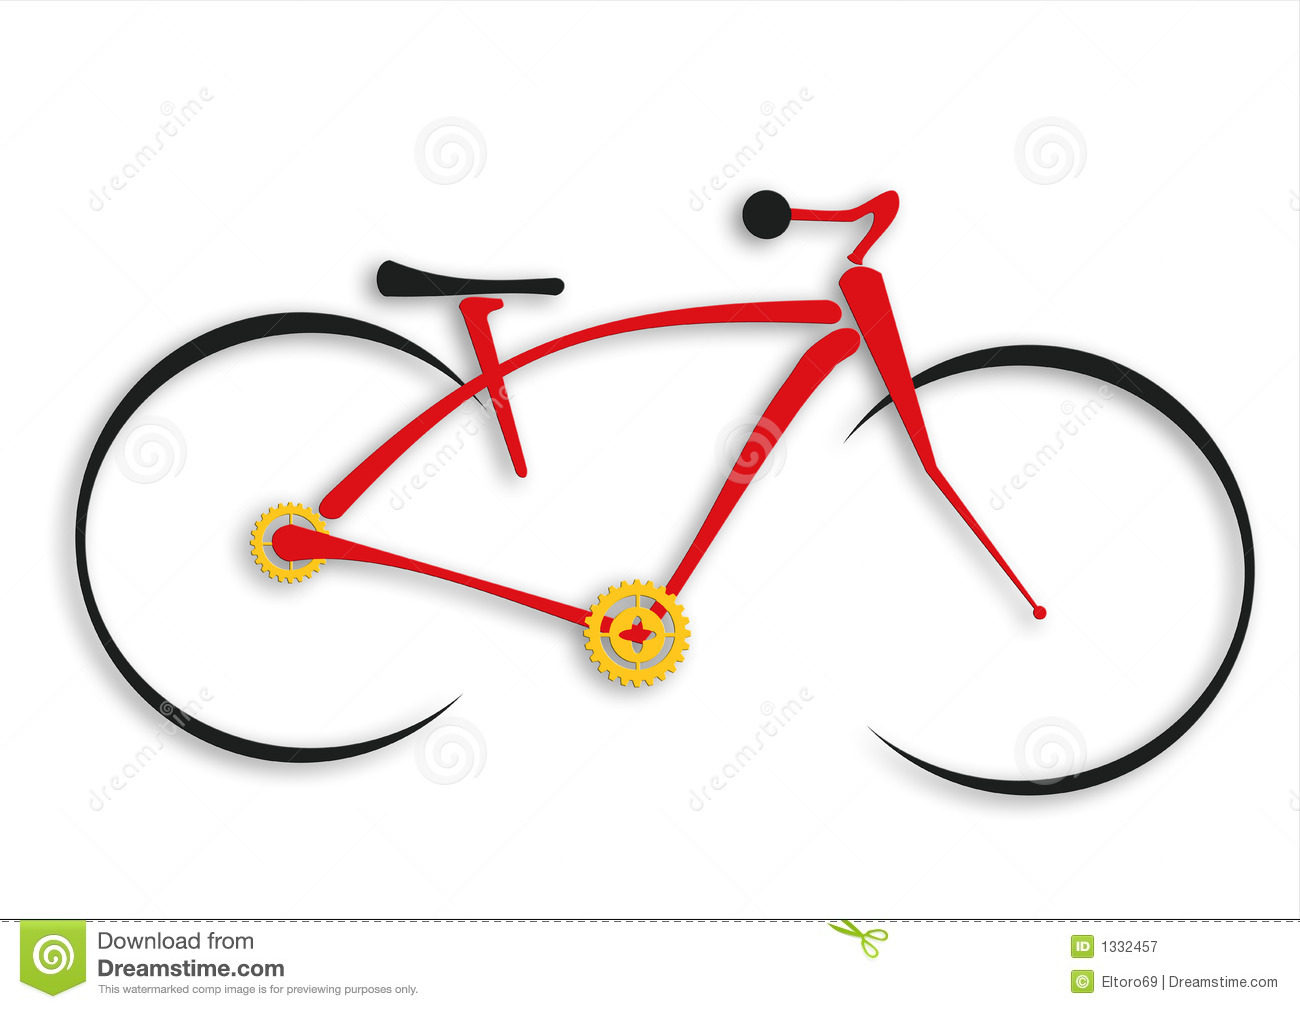 Bicycle Royalty Free Stock Photography - Image: 1332457